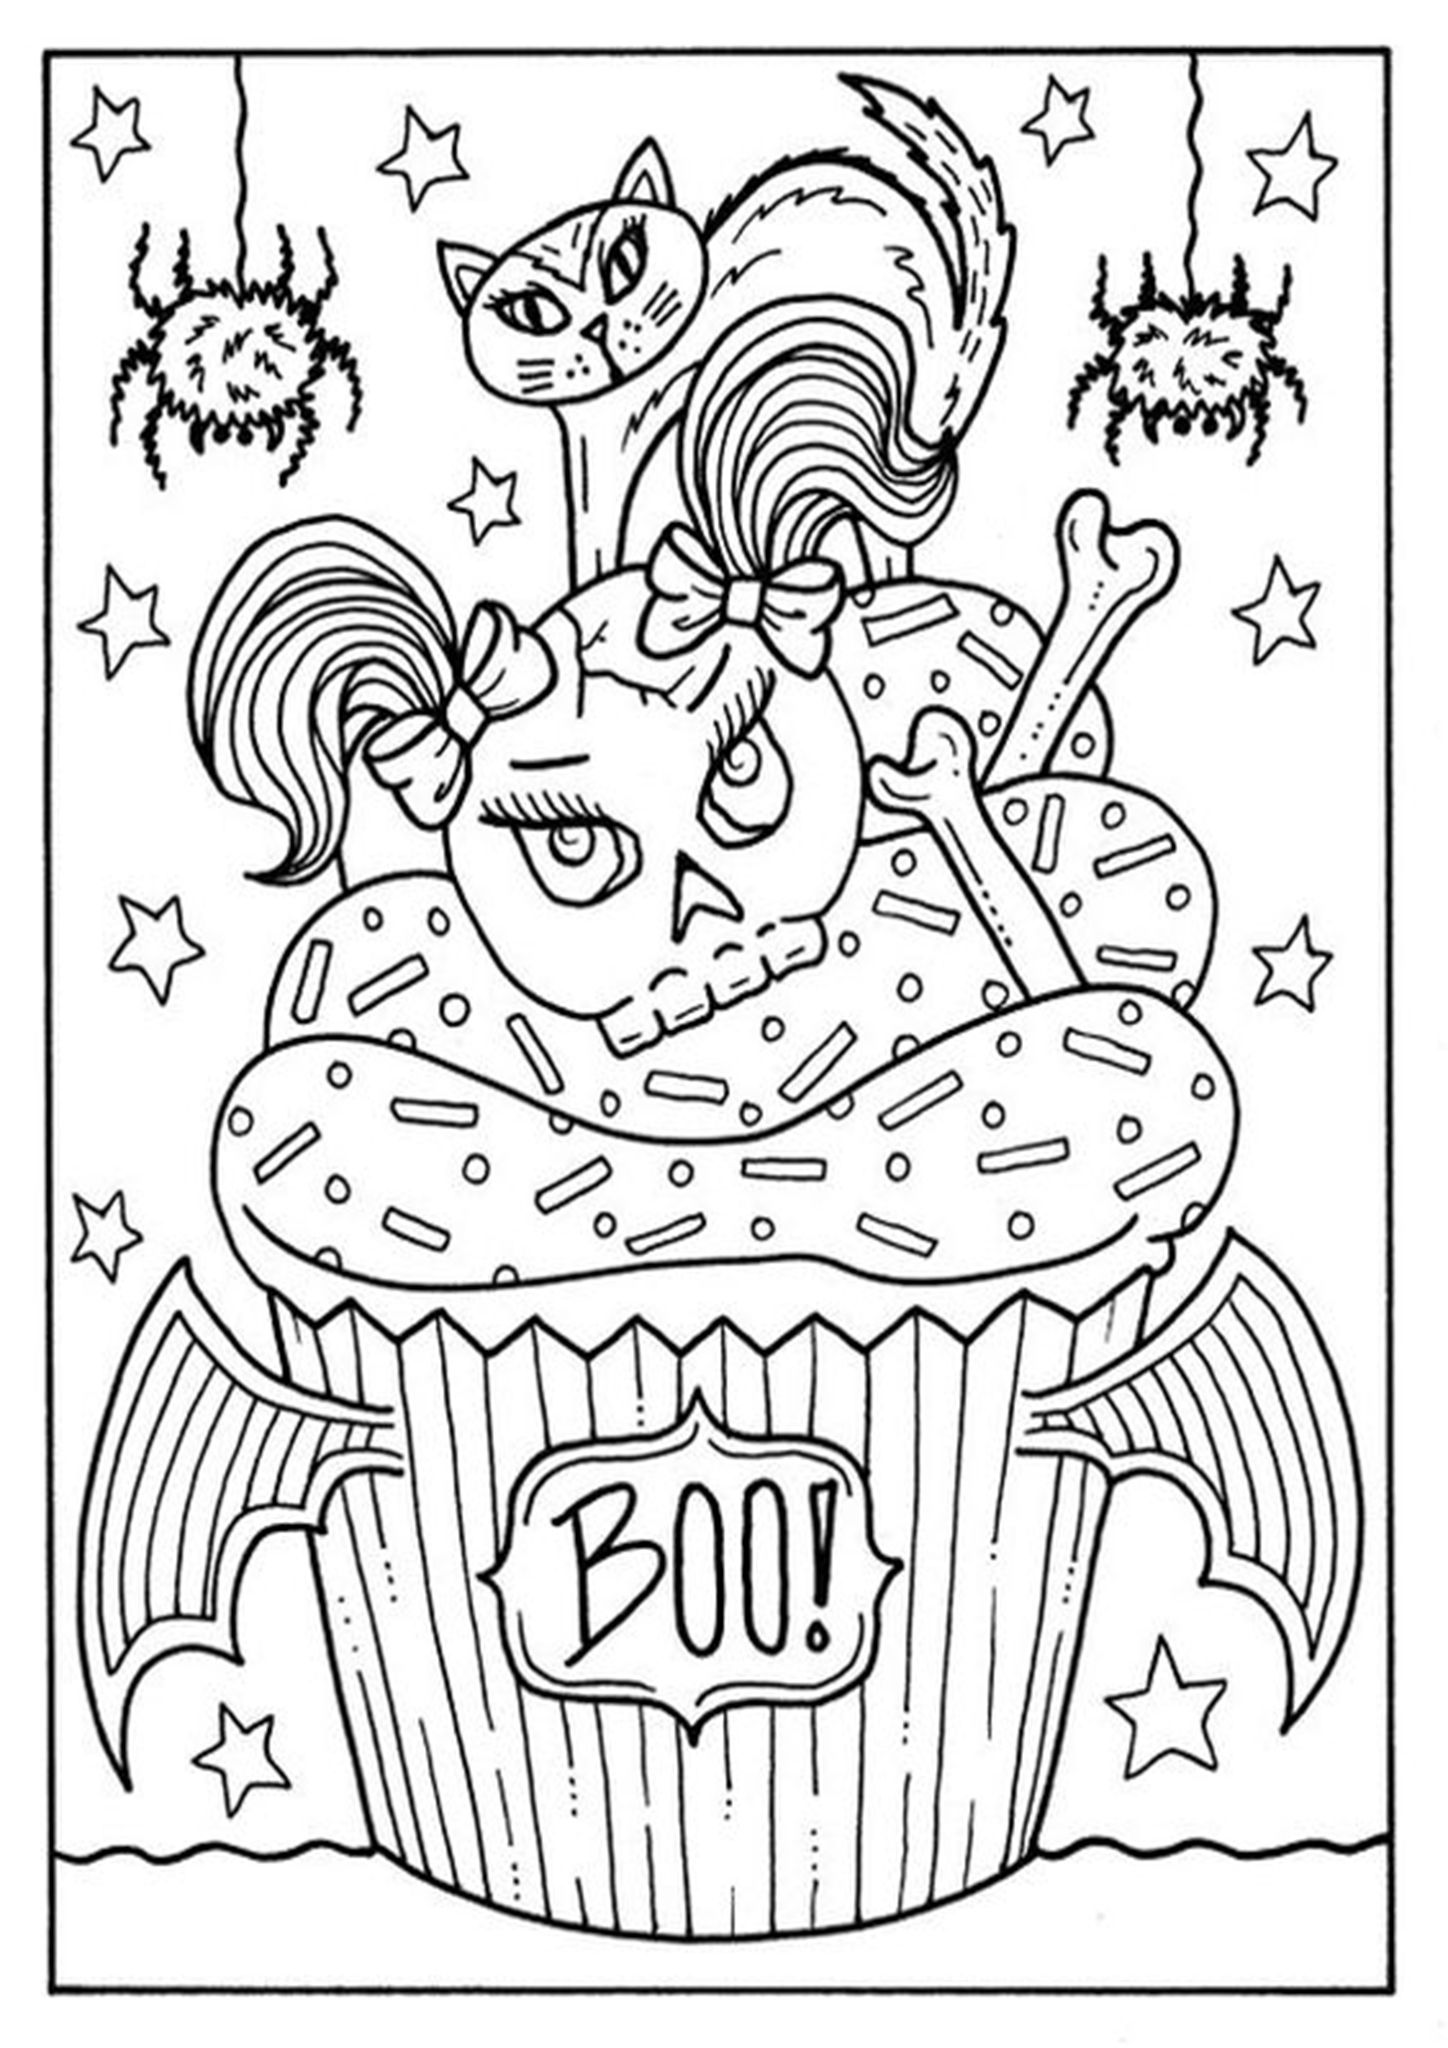 funny food coloring pages free downloadable summer fun coloring book pages food coloring funny pages